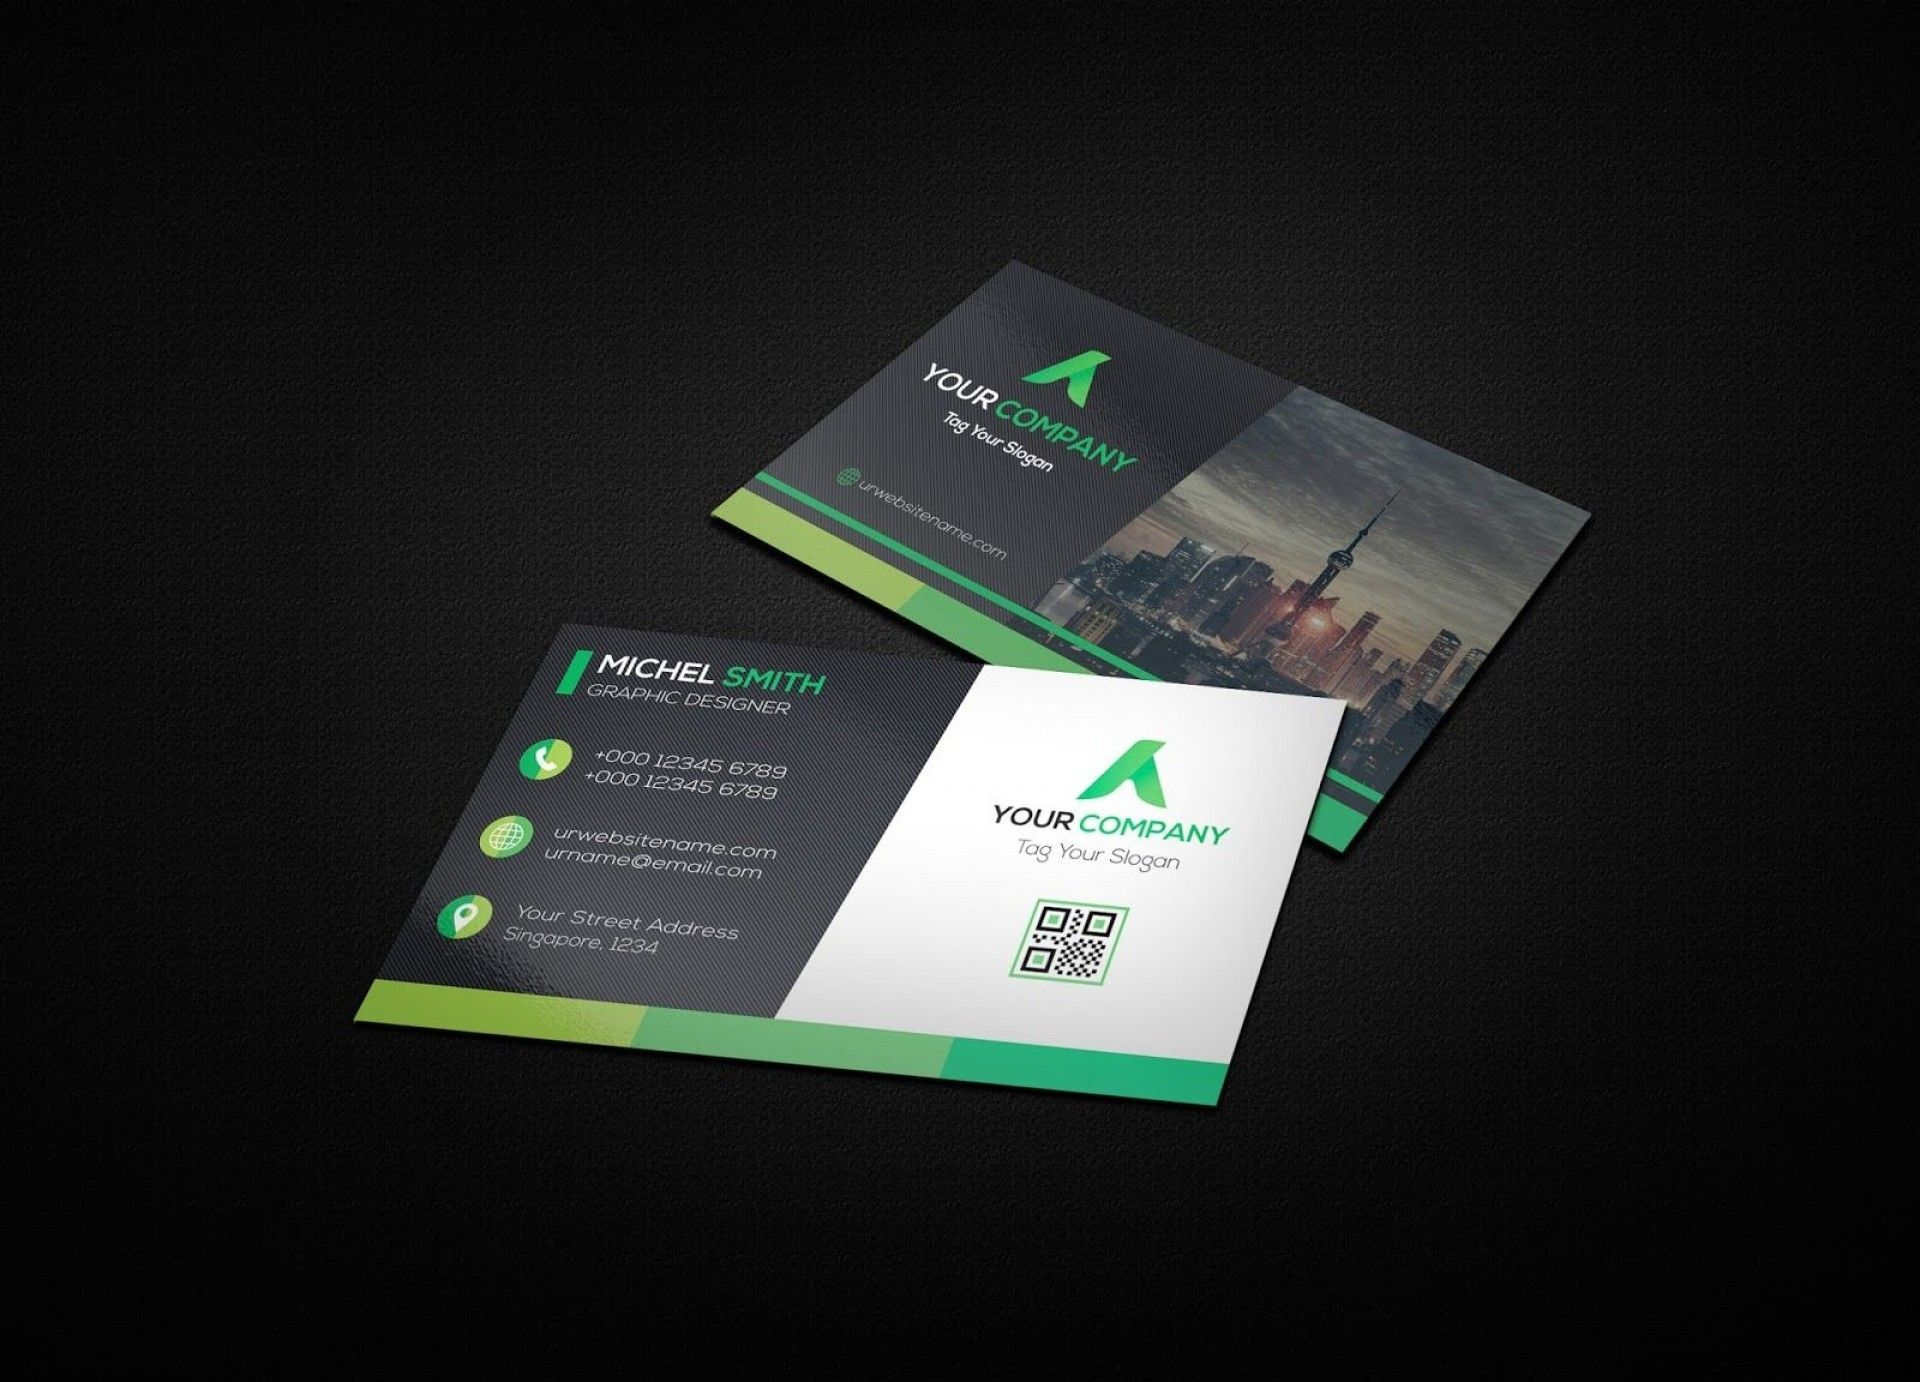 Download New 8 5 X 11 Business Card Template Can Save At New 8 5 X 11 Business Card Template Lette Business Card Mock Up Cool Business Cards Business Card Psd